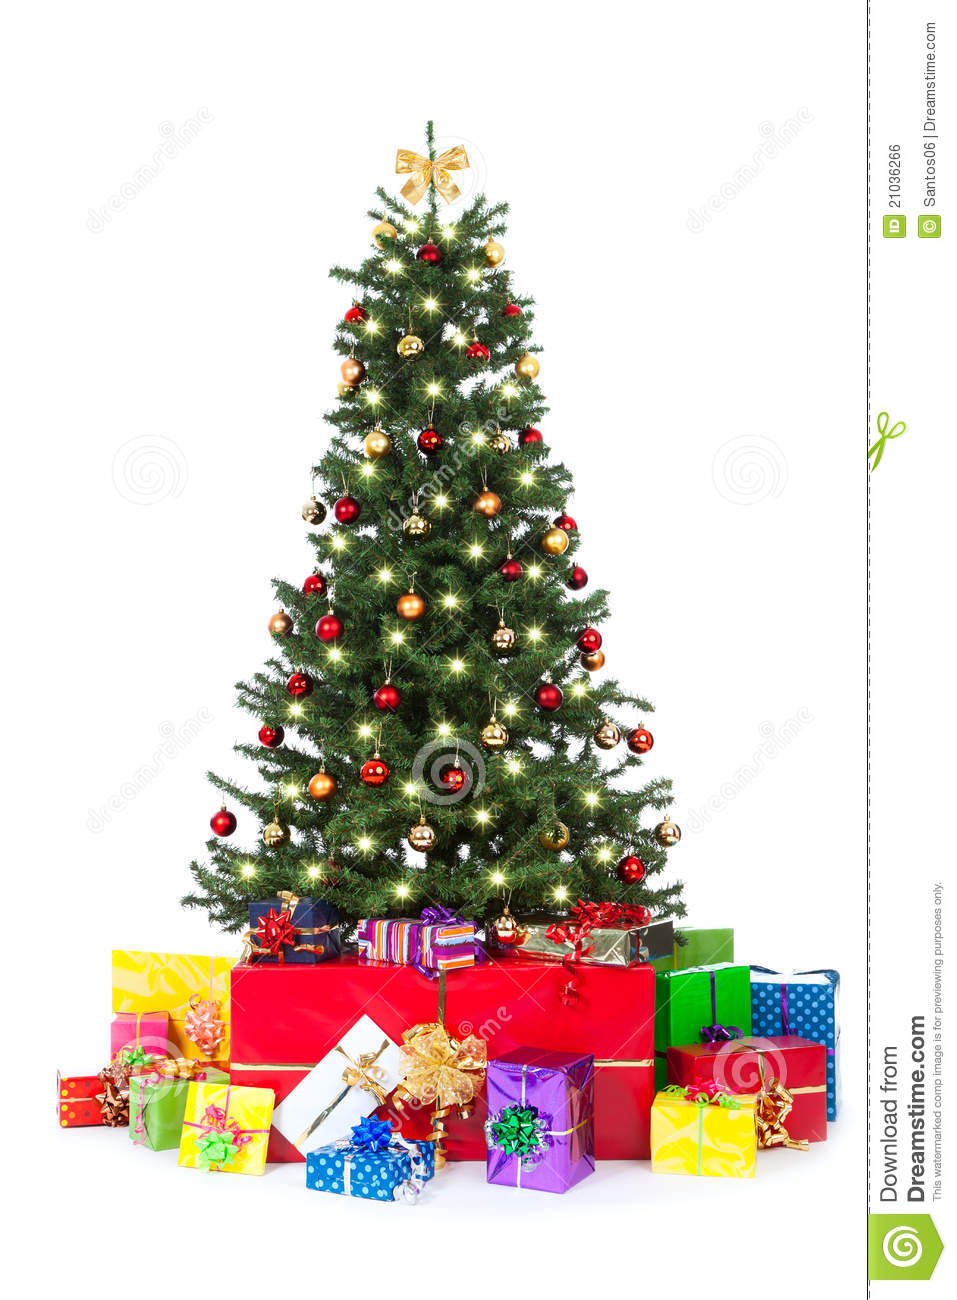 Decorated Christmas Tree With Many Colorful Gifts Royalty Free ...